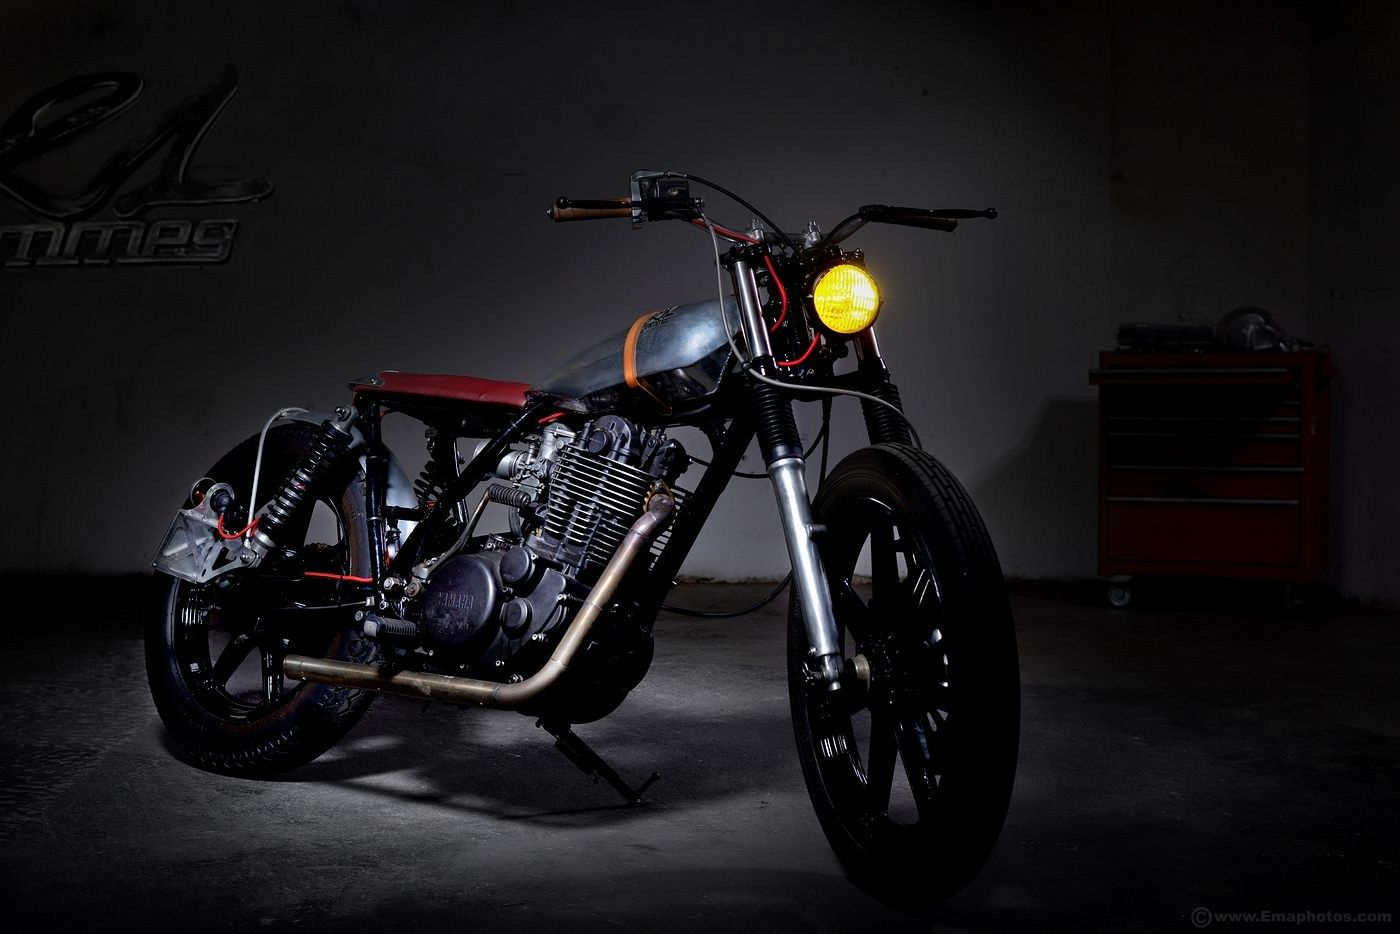 SR 4OO by 21 grammes motorcycles - Discover on http://21grammesmotorcycles.com/2015/04/13/400-sr-2-la-belle-by-21-grammes/